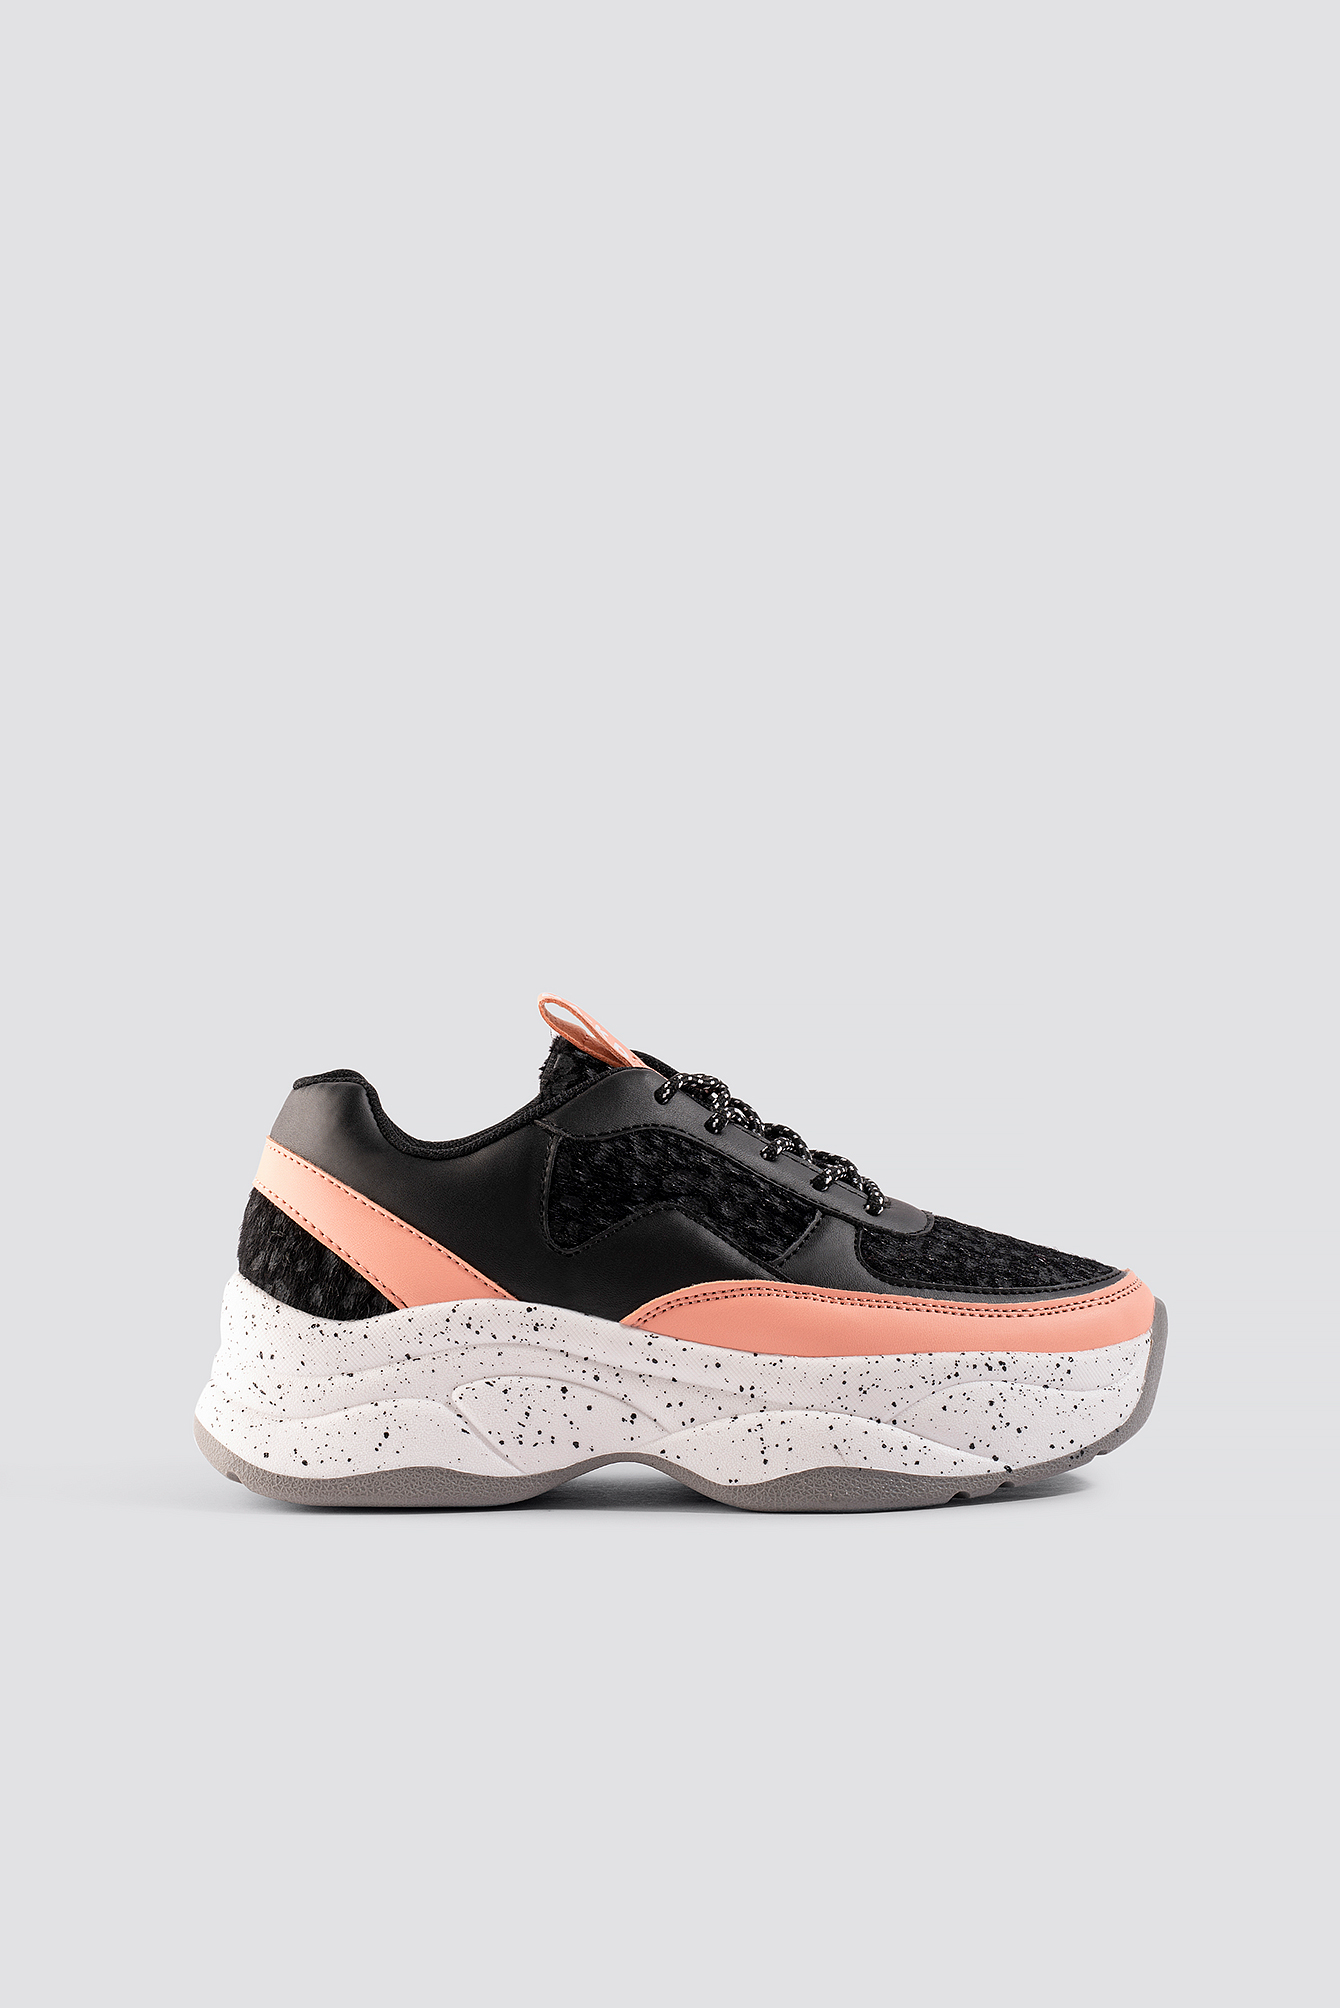 na-kd shoes -  Bolt Sneaker - Black,Pink,Multicolor